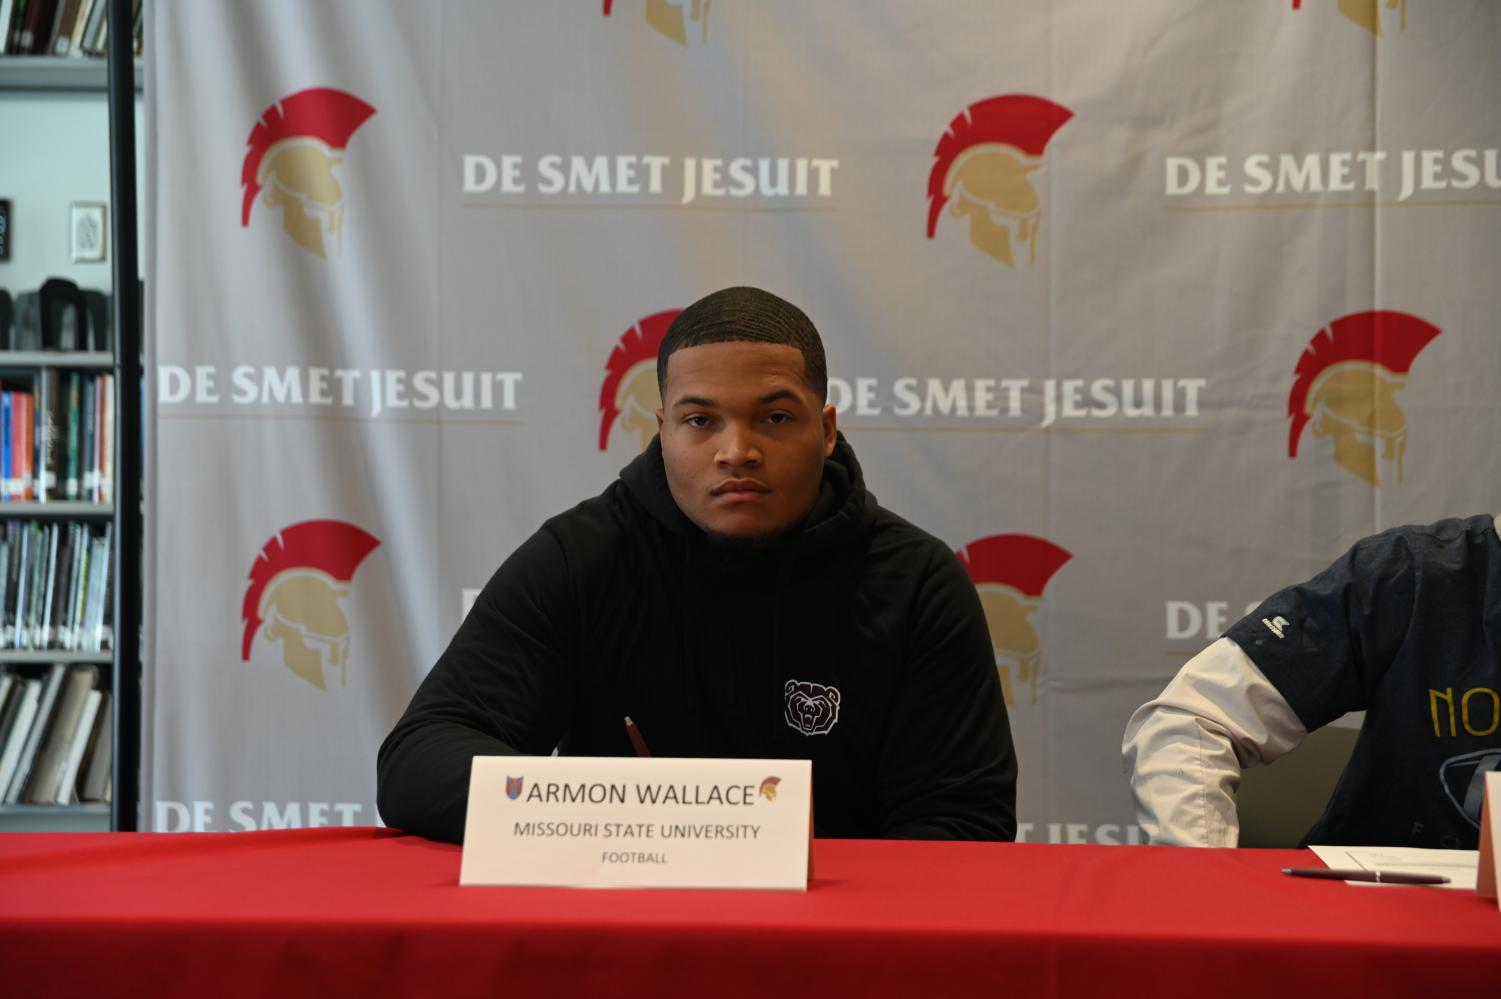 Senior Armon Wallace poses for a photo prior to signing to Missouri State University.